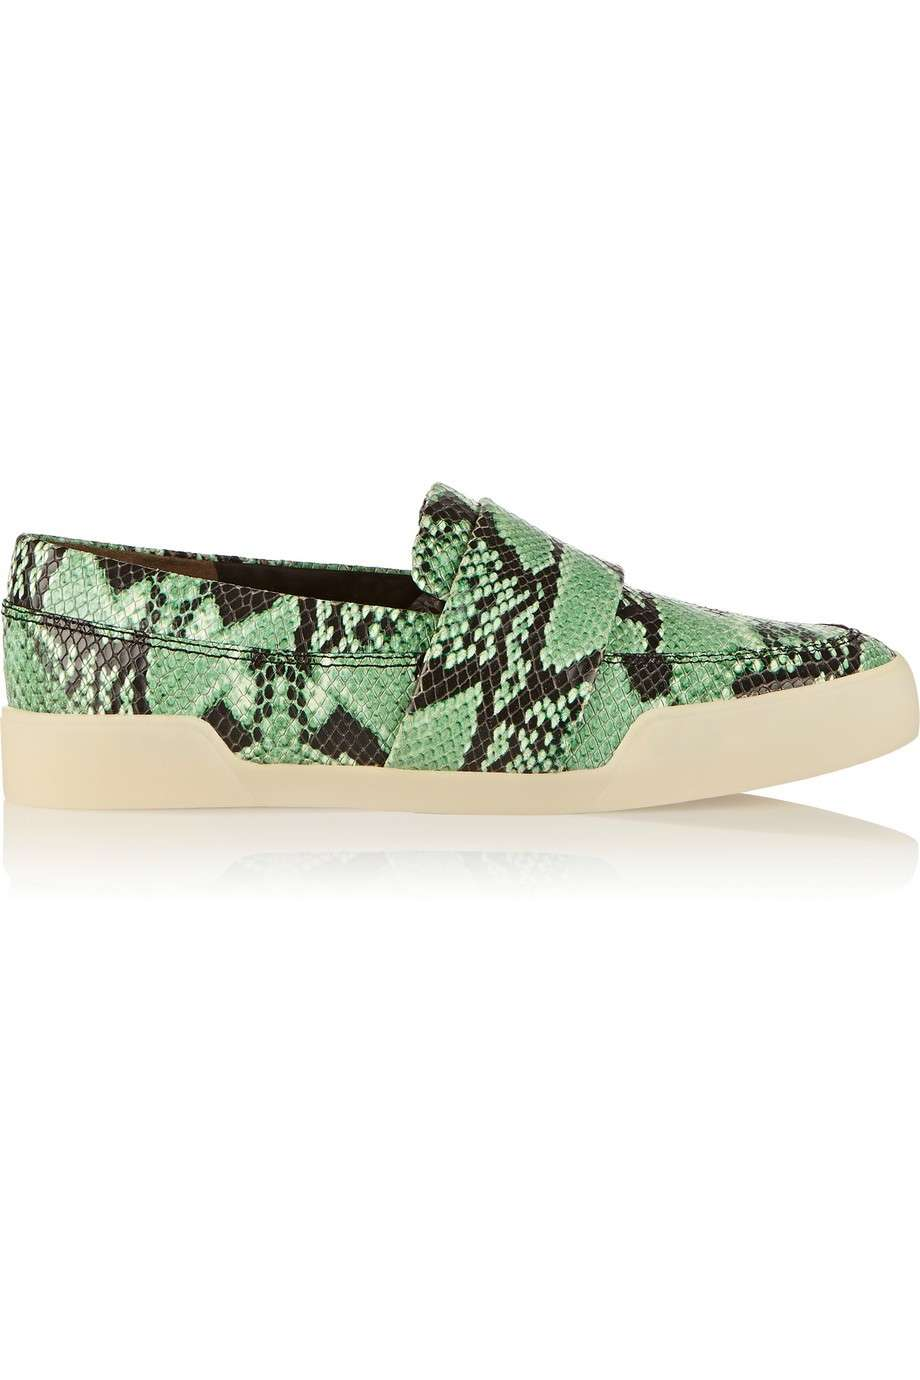 Slip on 3.1 Phillip Lim